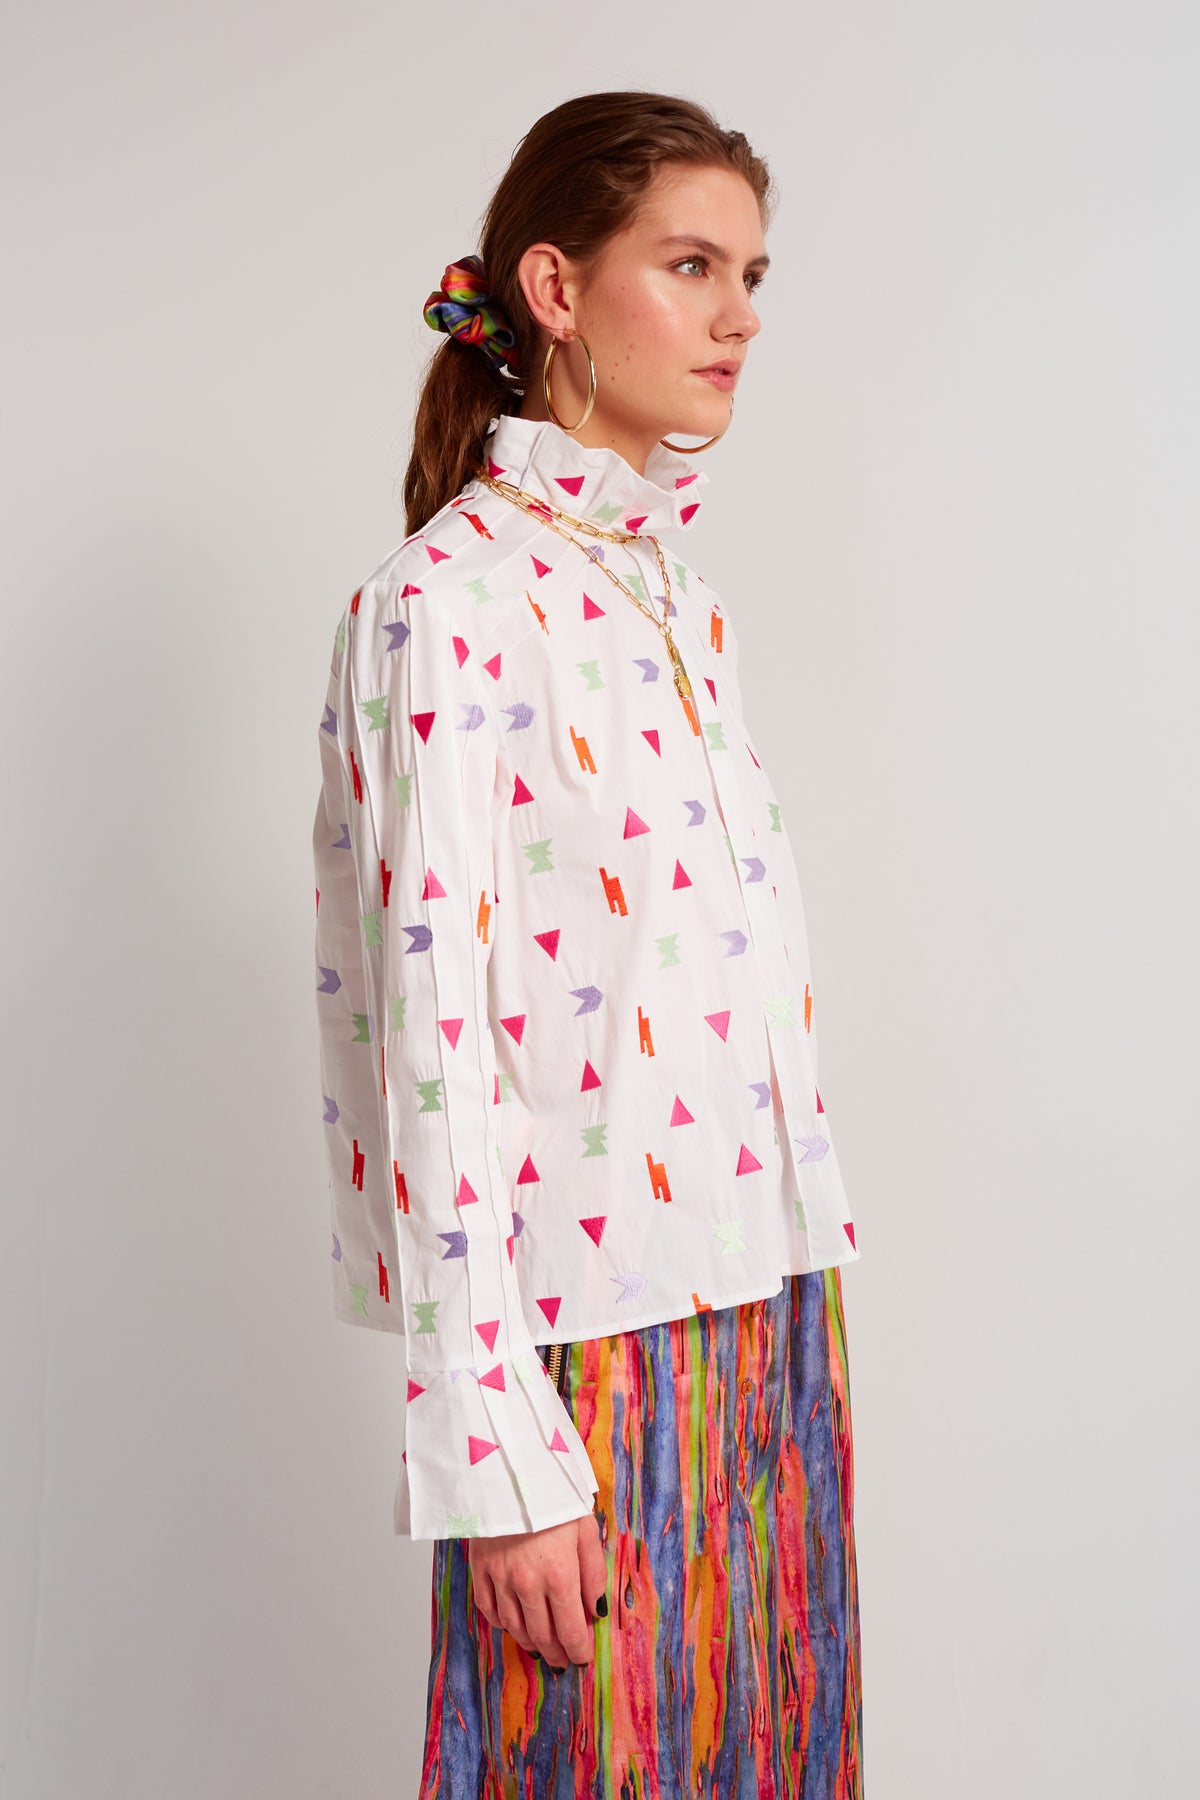 Muse shirt in Neon embroideries